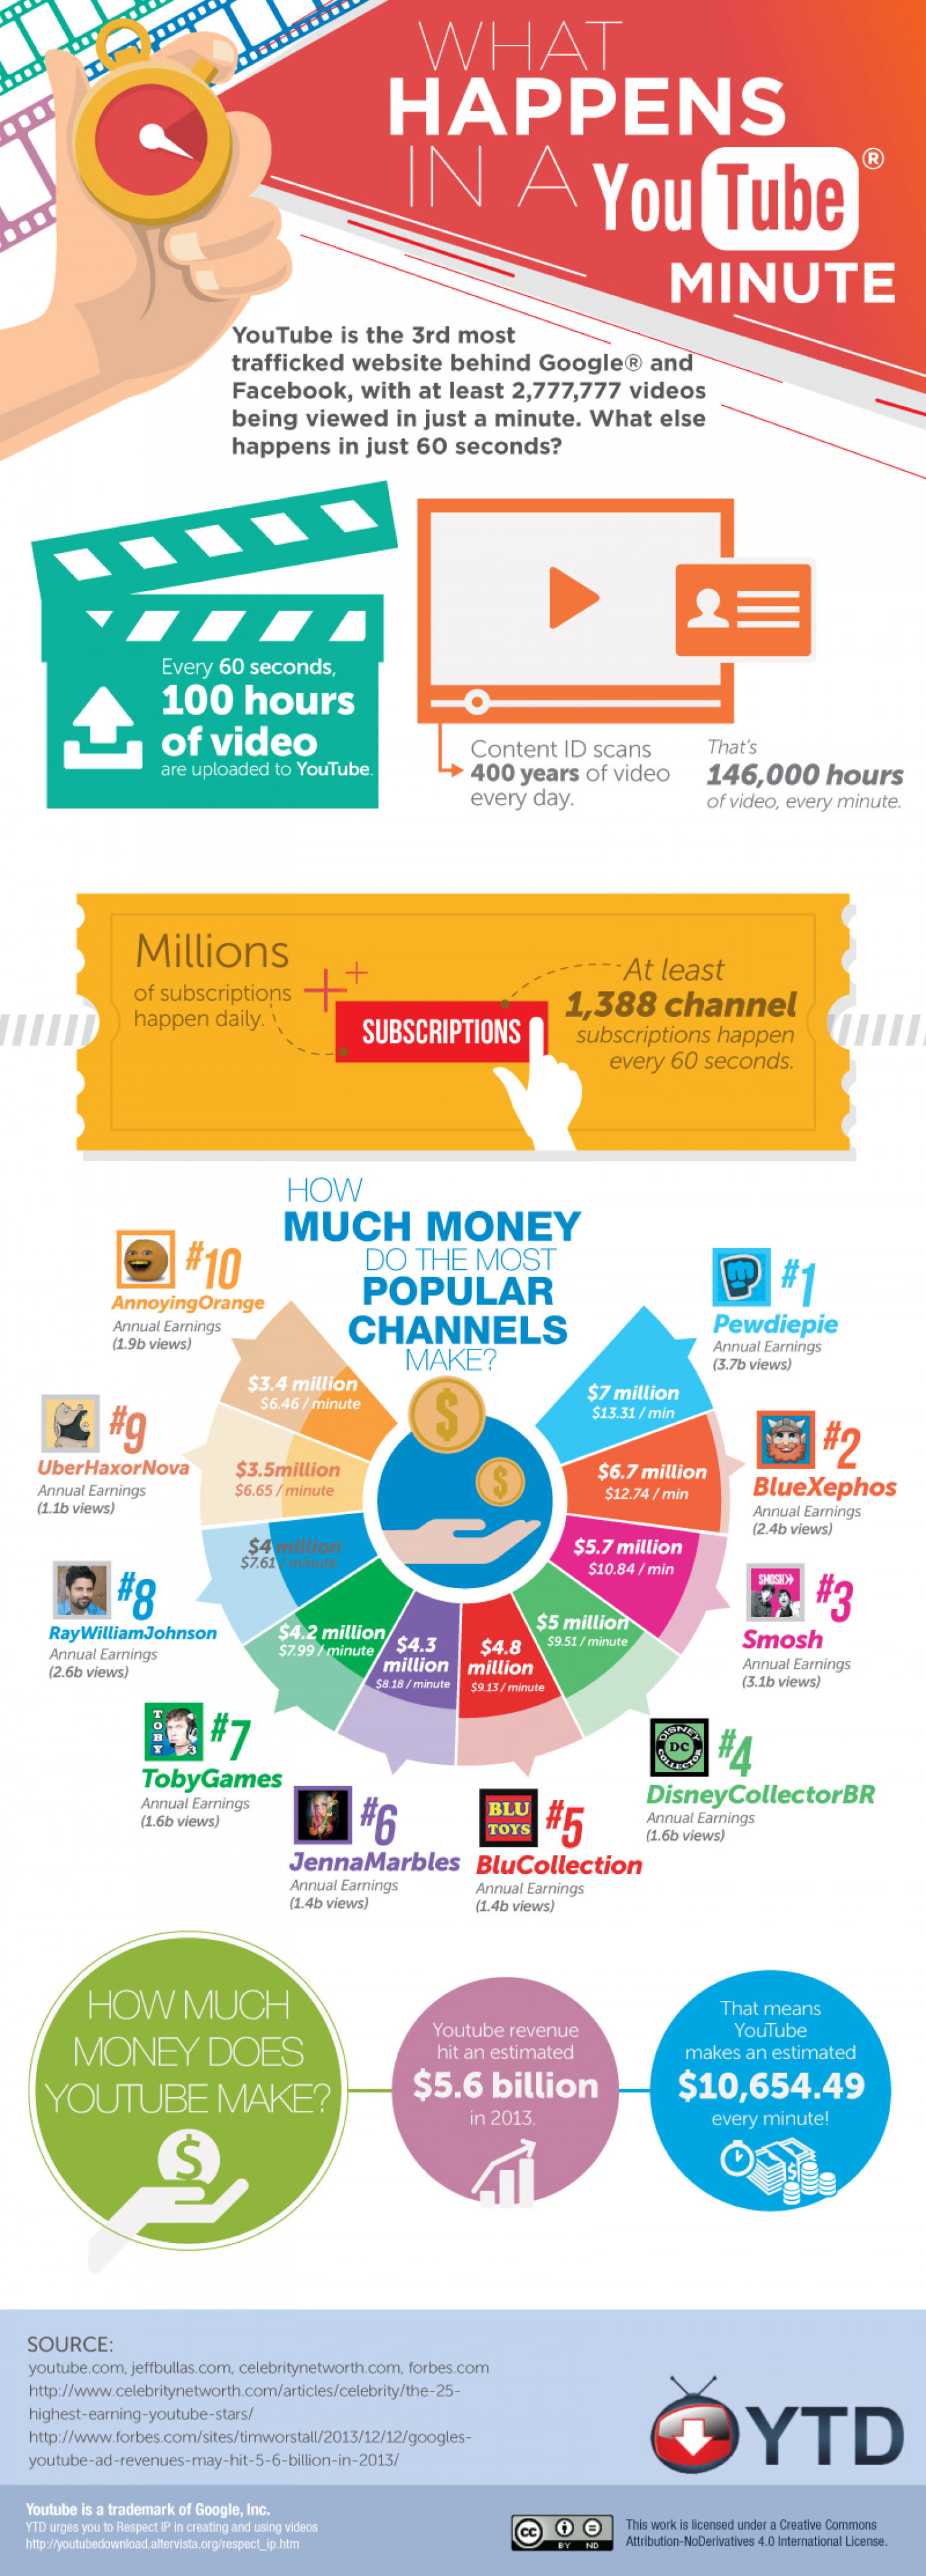 What Happens in a YouTube Minute Infographic